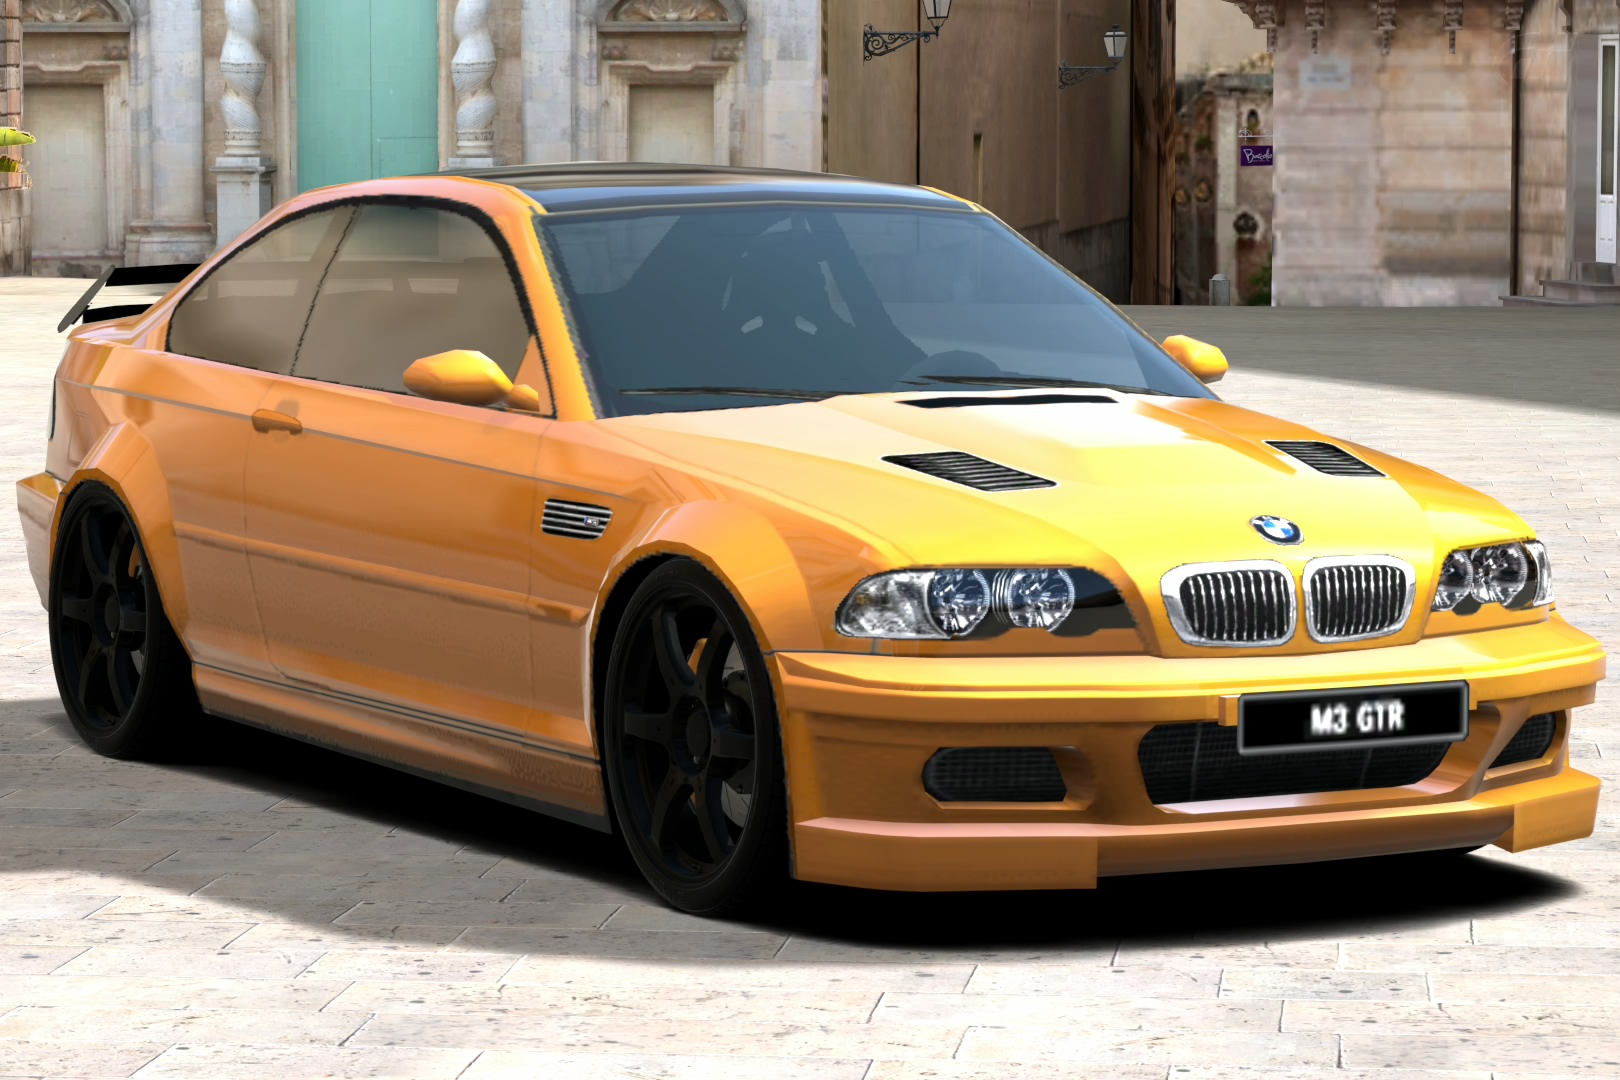 BMW M3 GTR by Riki